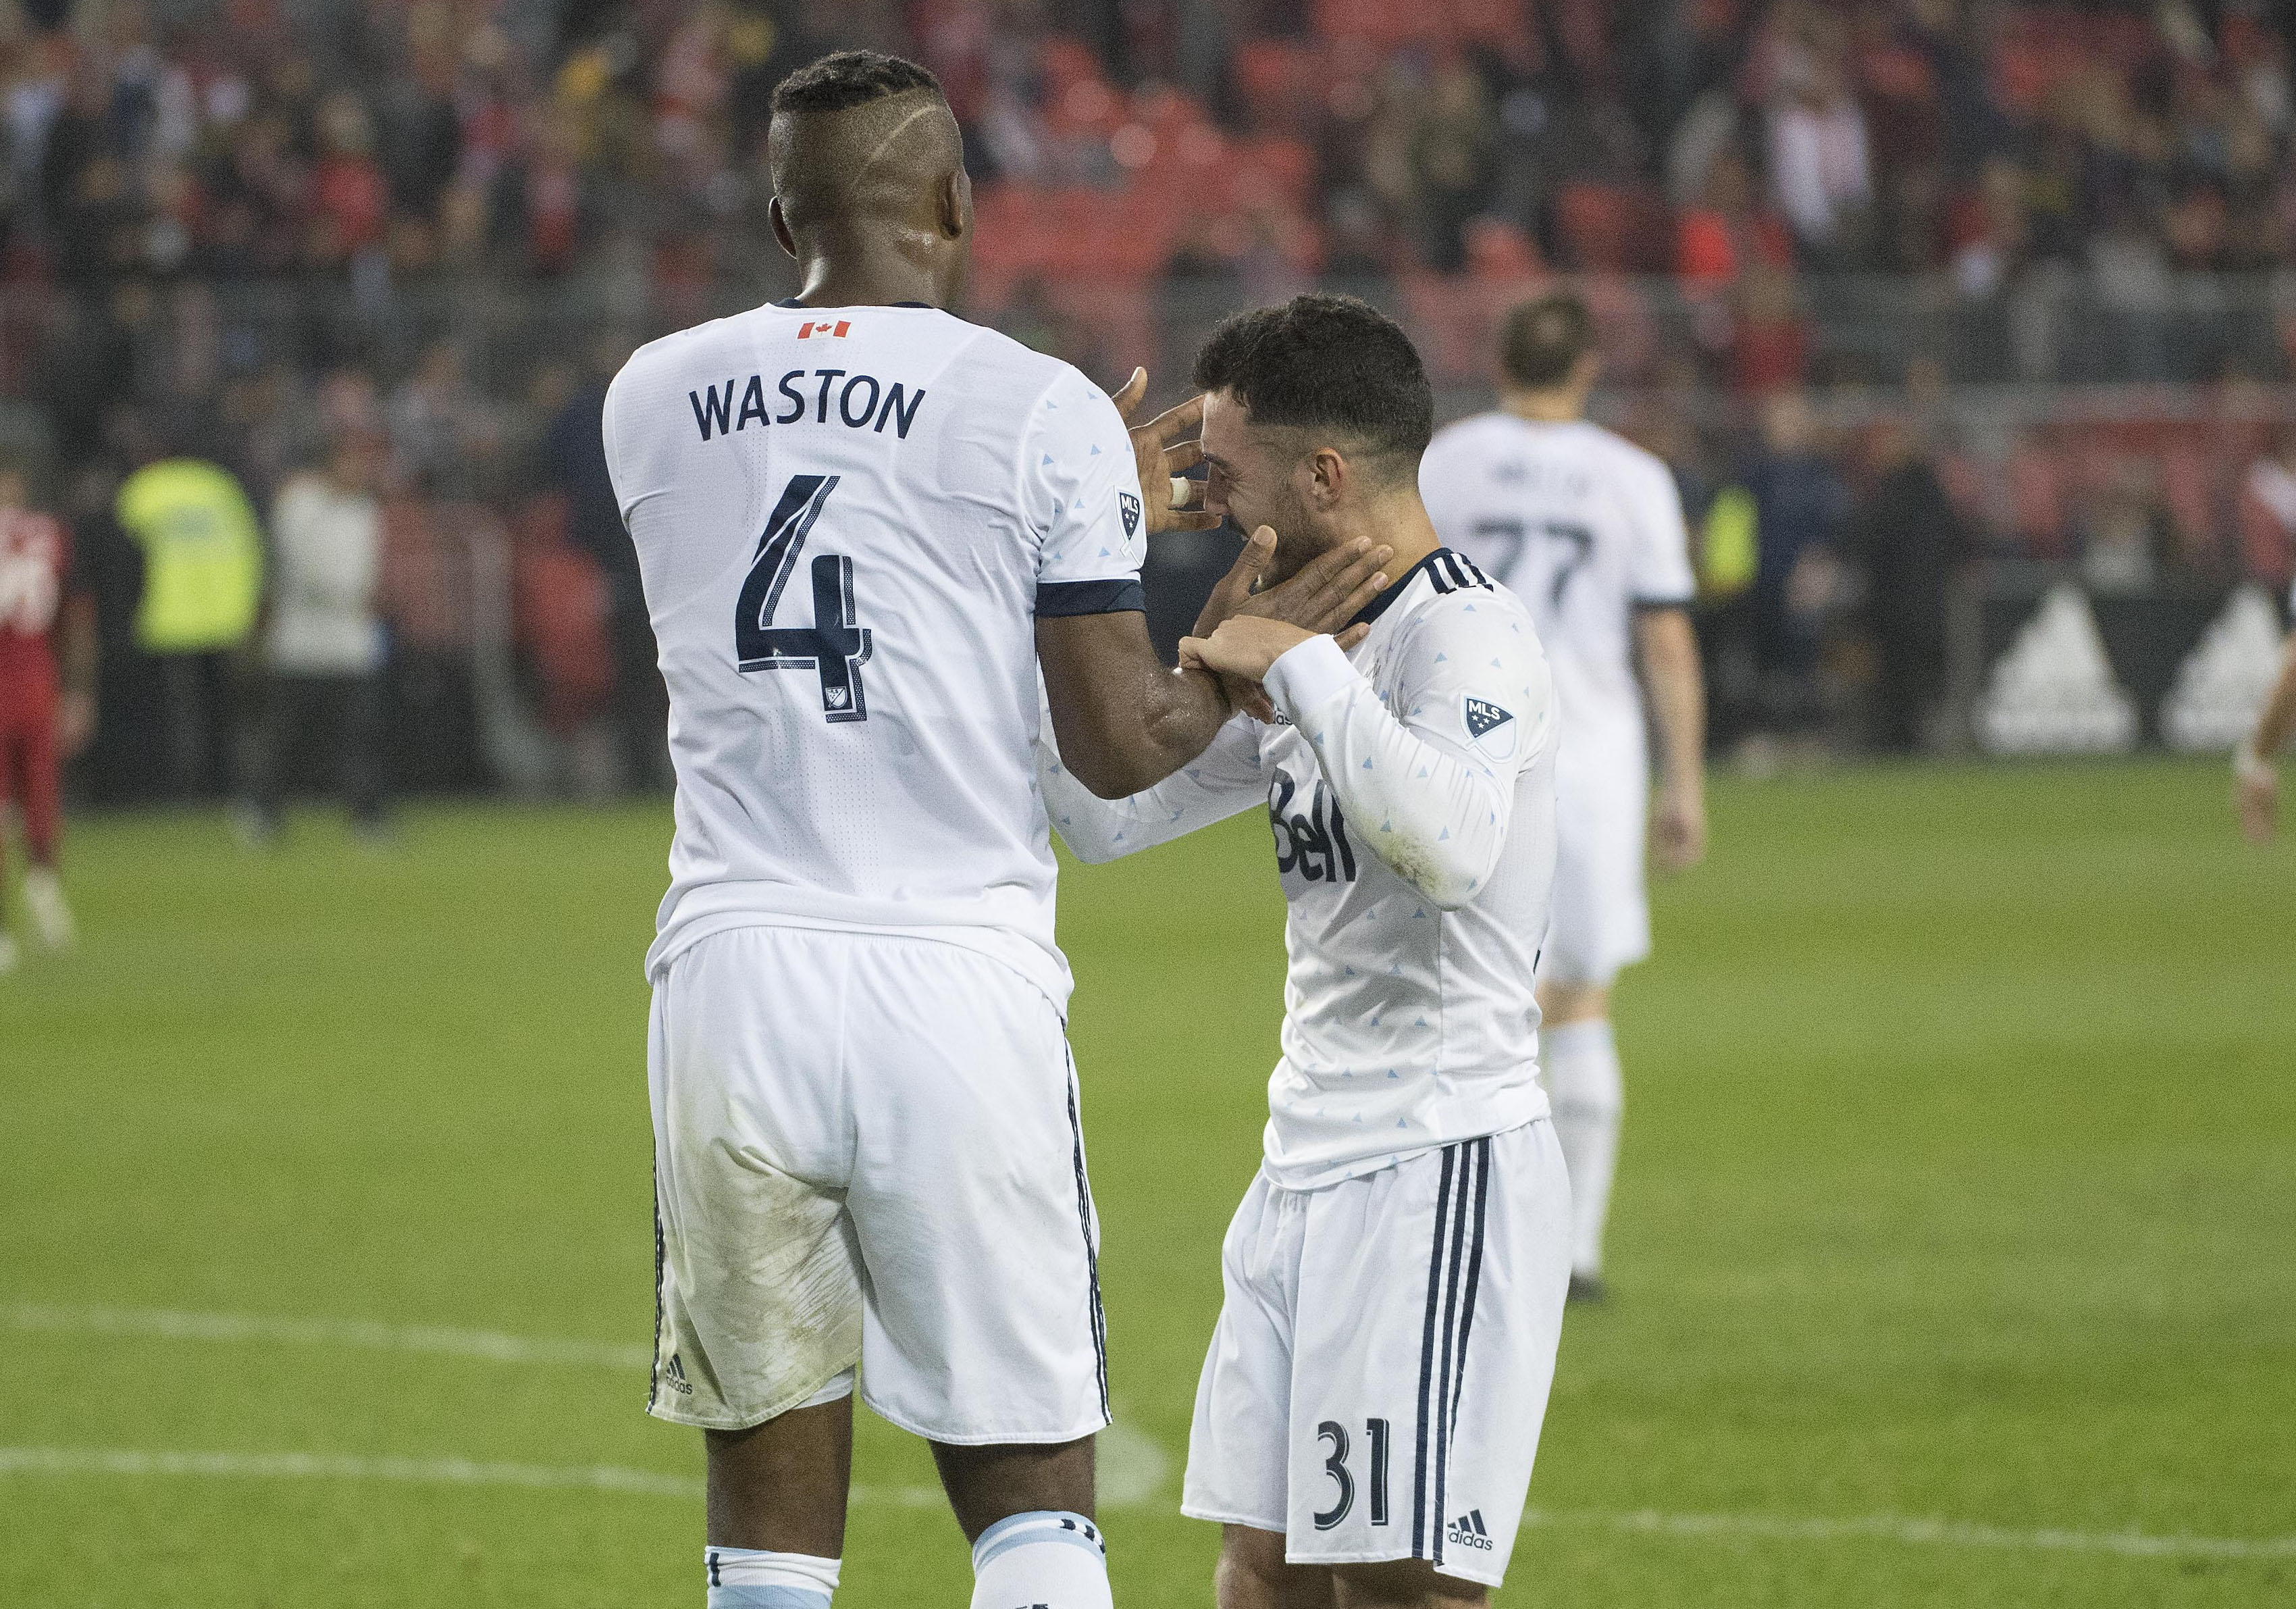 timeless design 70fc6 d7a93 Vancouver Whitecaps and the 2018 MLS Playoffs - Eighty Six ...